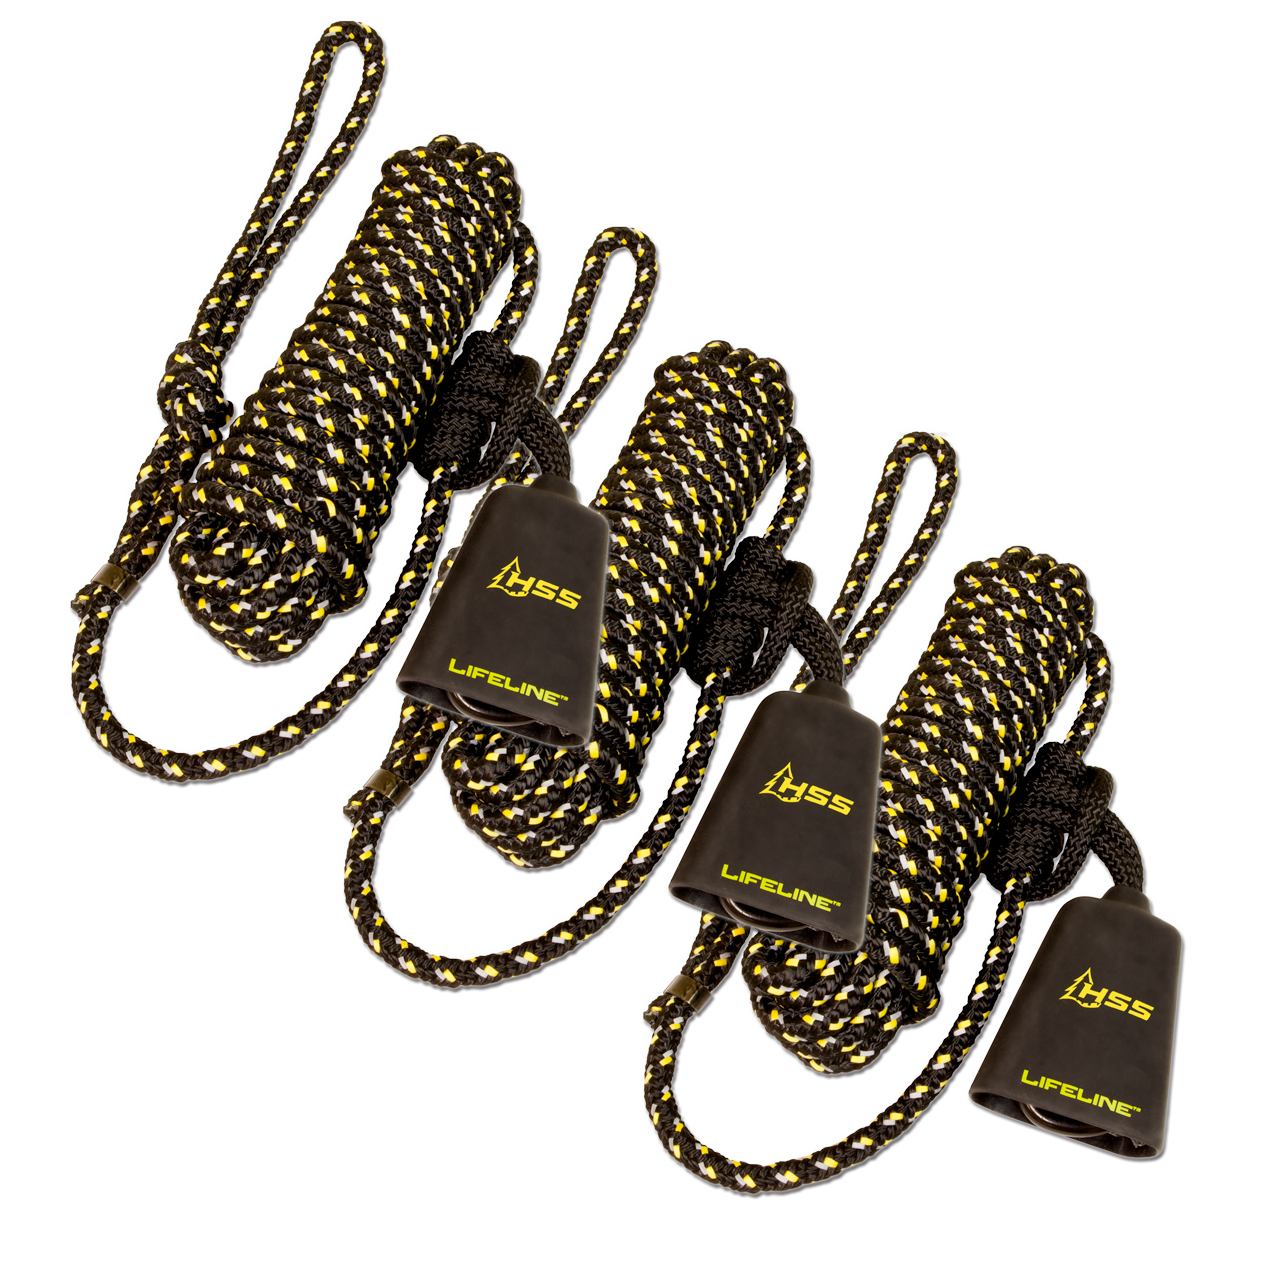 Hunter safety systems lifeline system 3 pack for harness